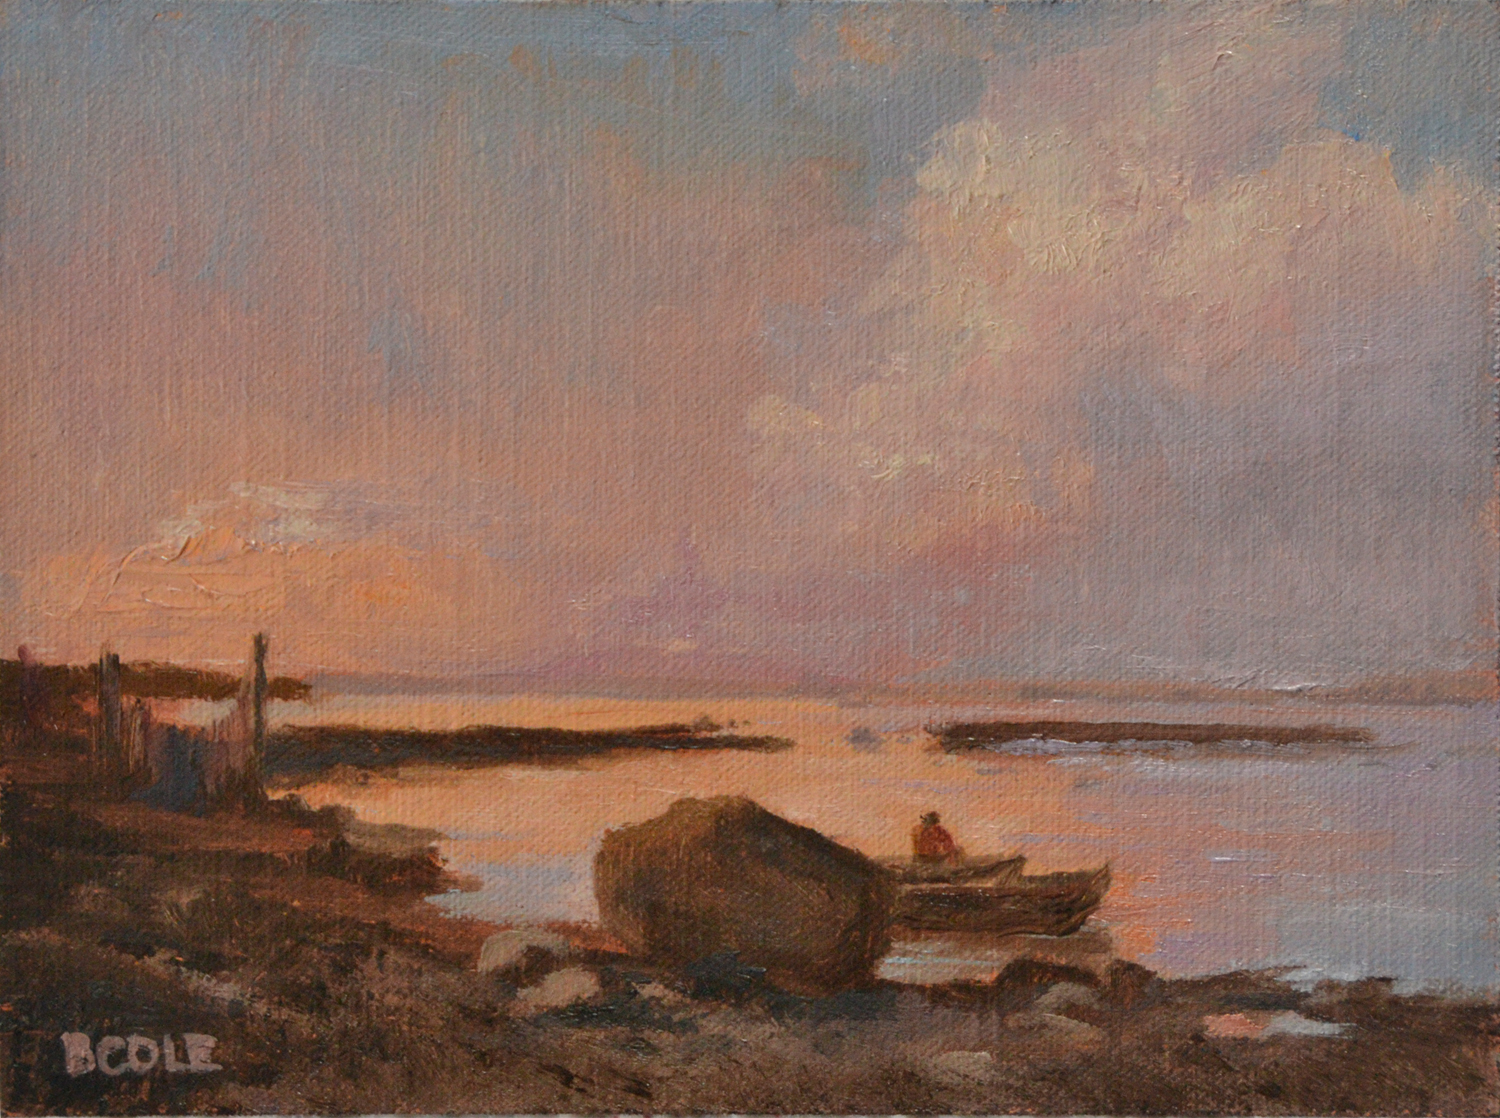 Beth Cole after Alexei Savrasov | The Sea Shore in the Vicinity Oranienbaum | Oil on Linen | 6 x 8